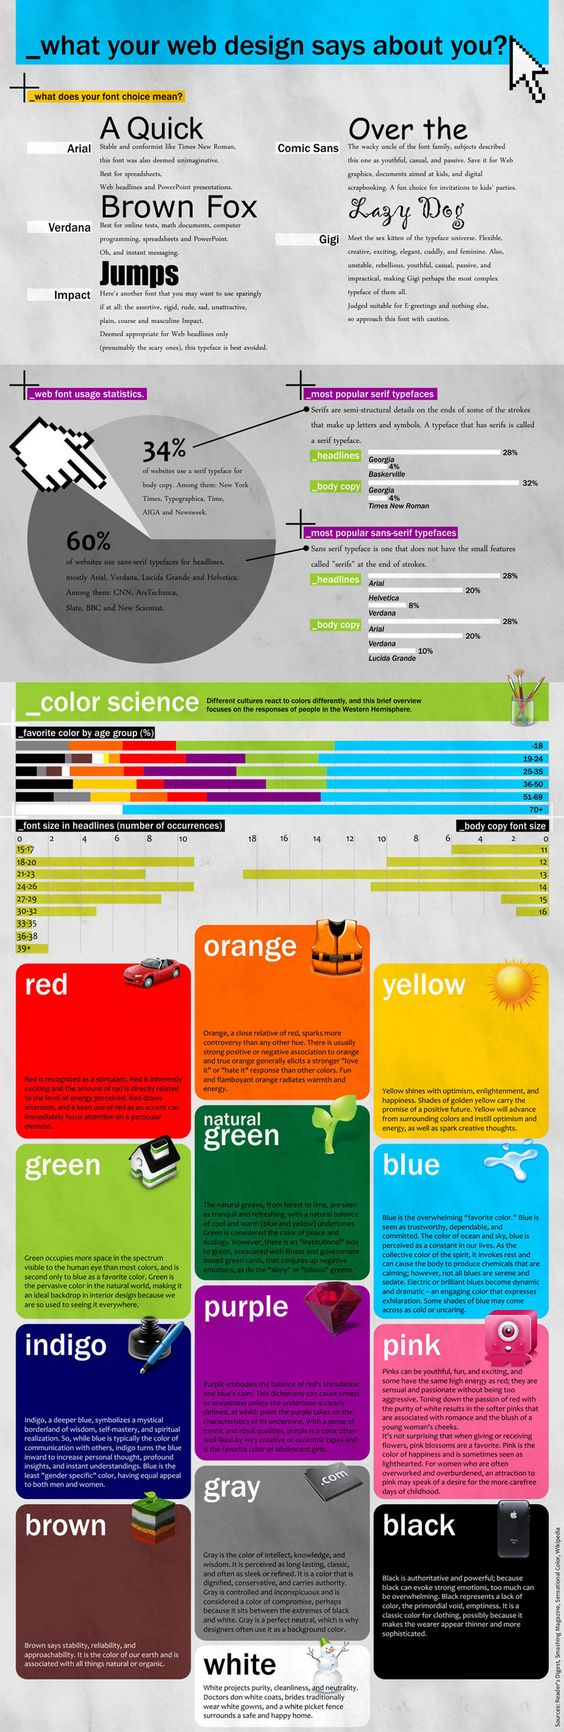 What your webdesign says about you?